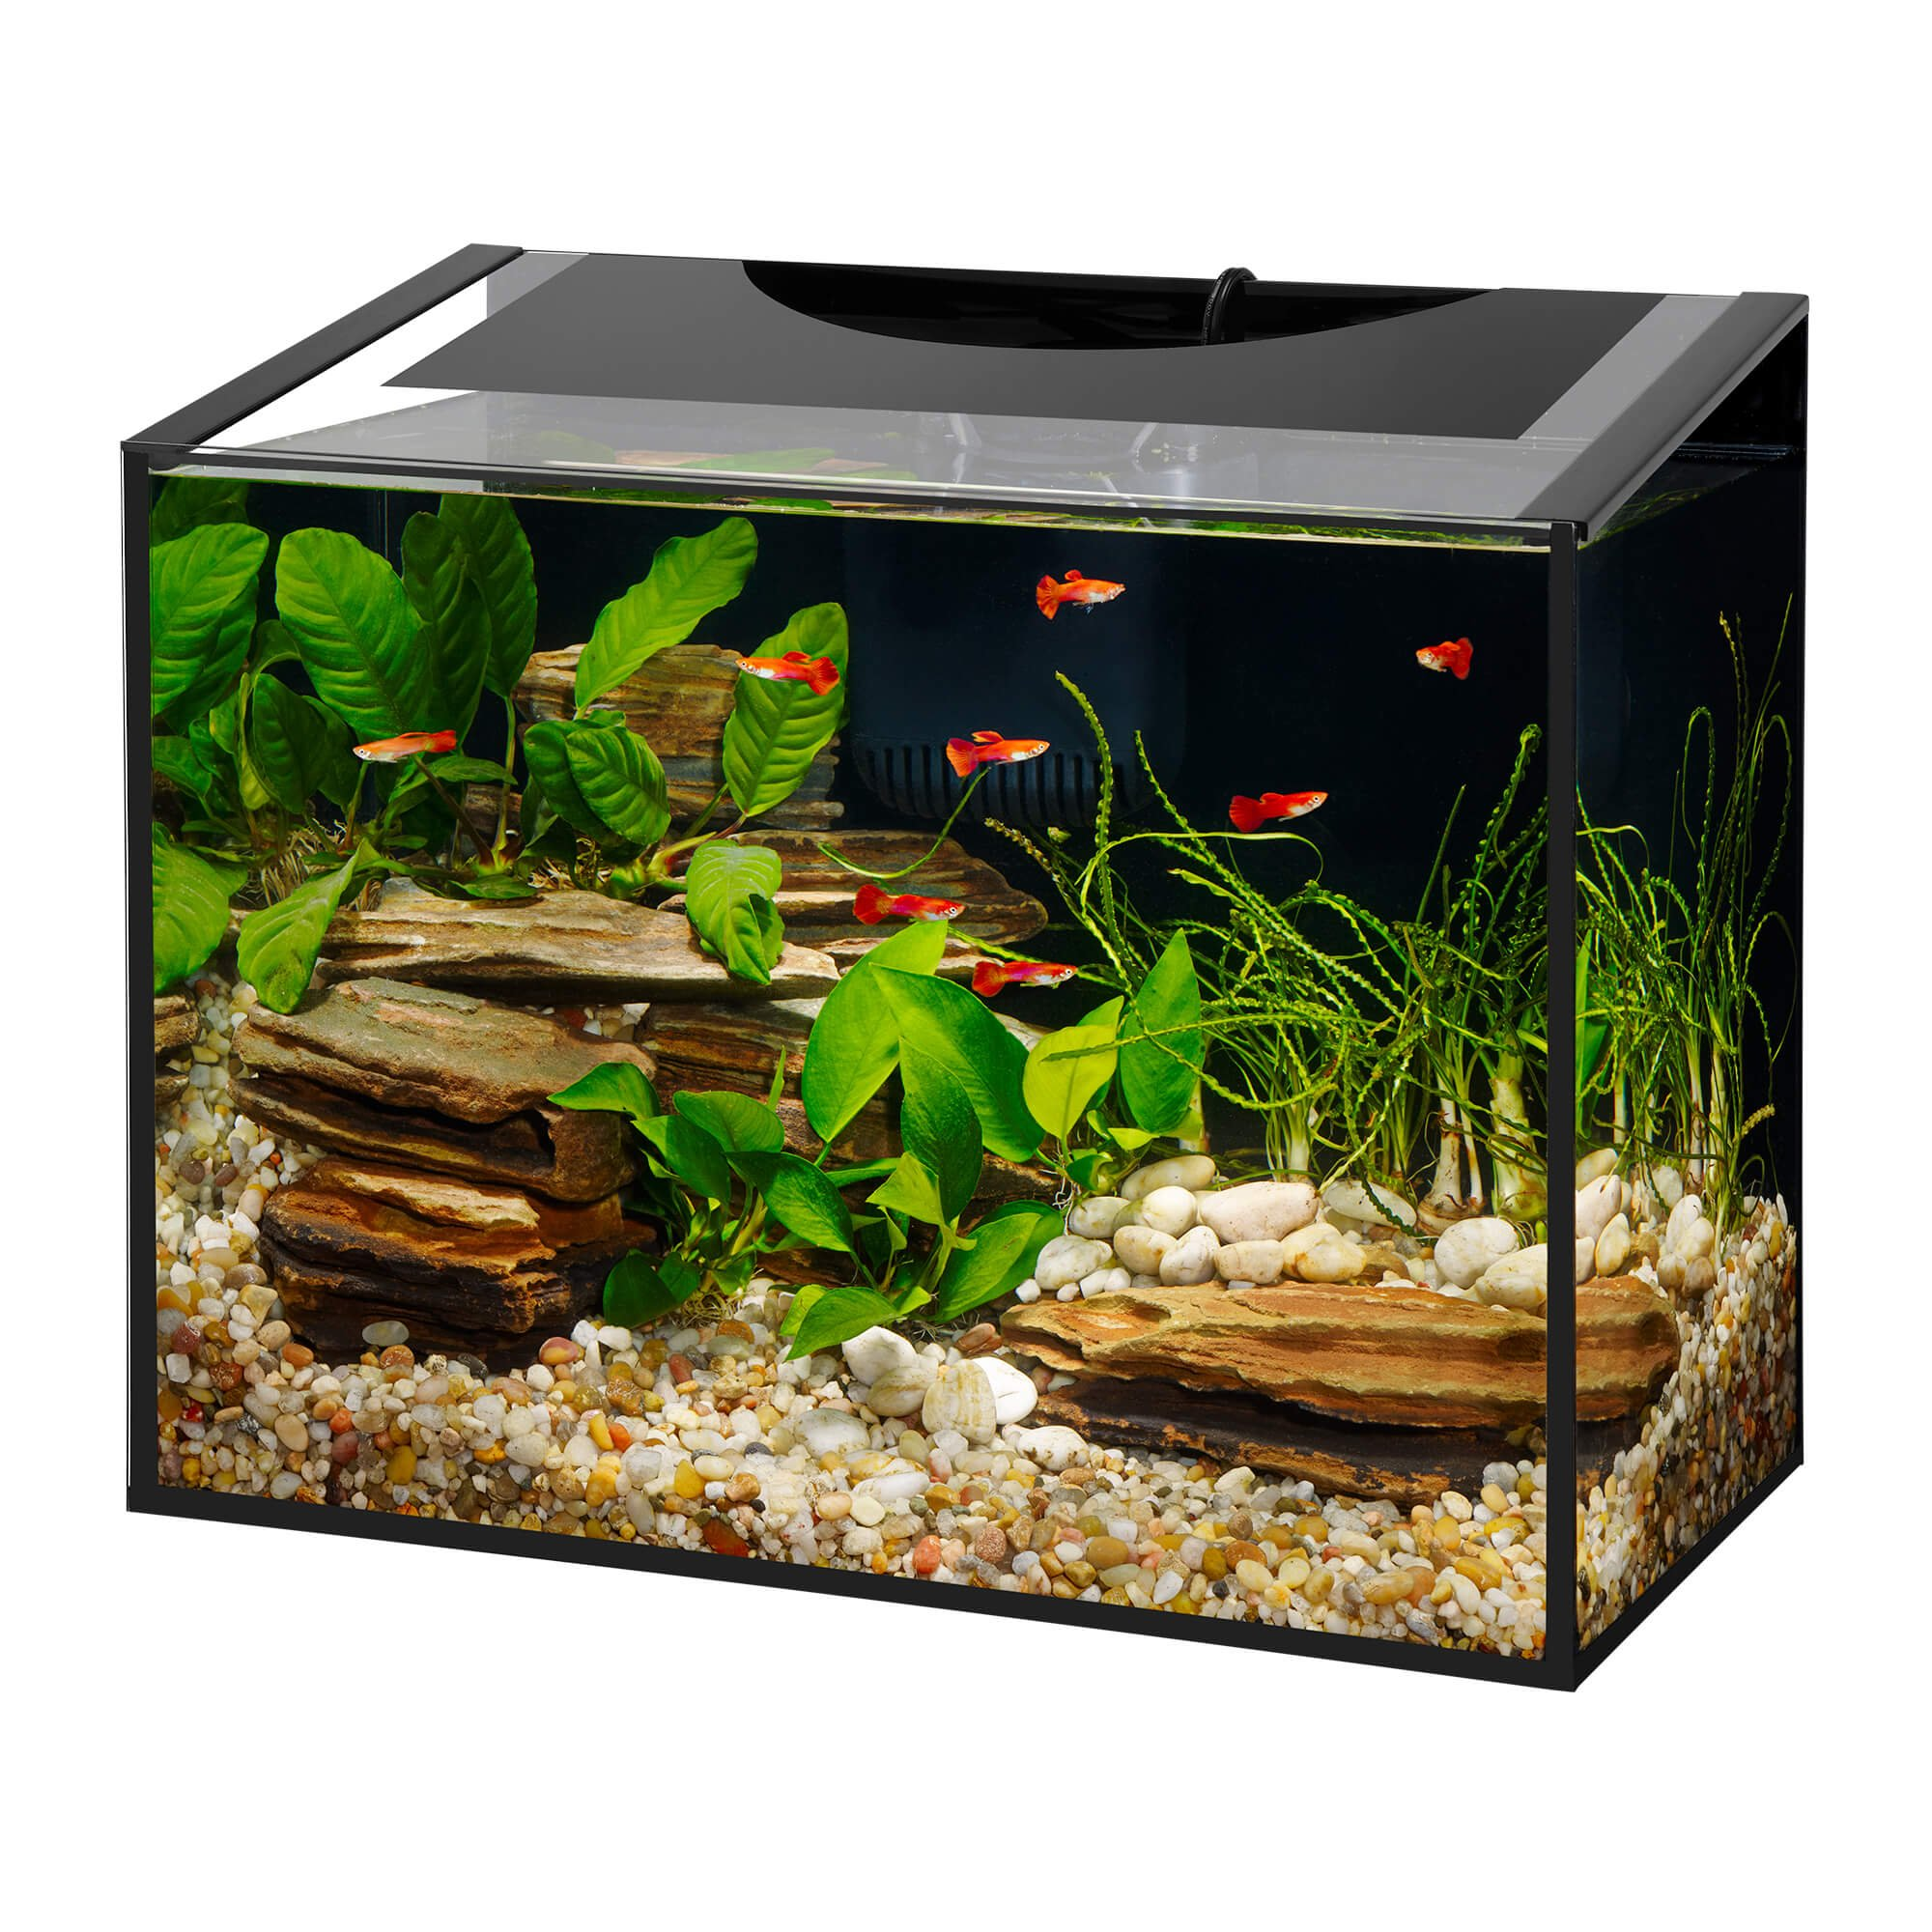 Aqueon Ascent Frameless LED Aquarium Kit